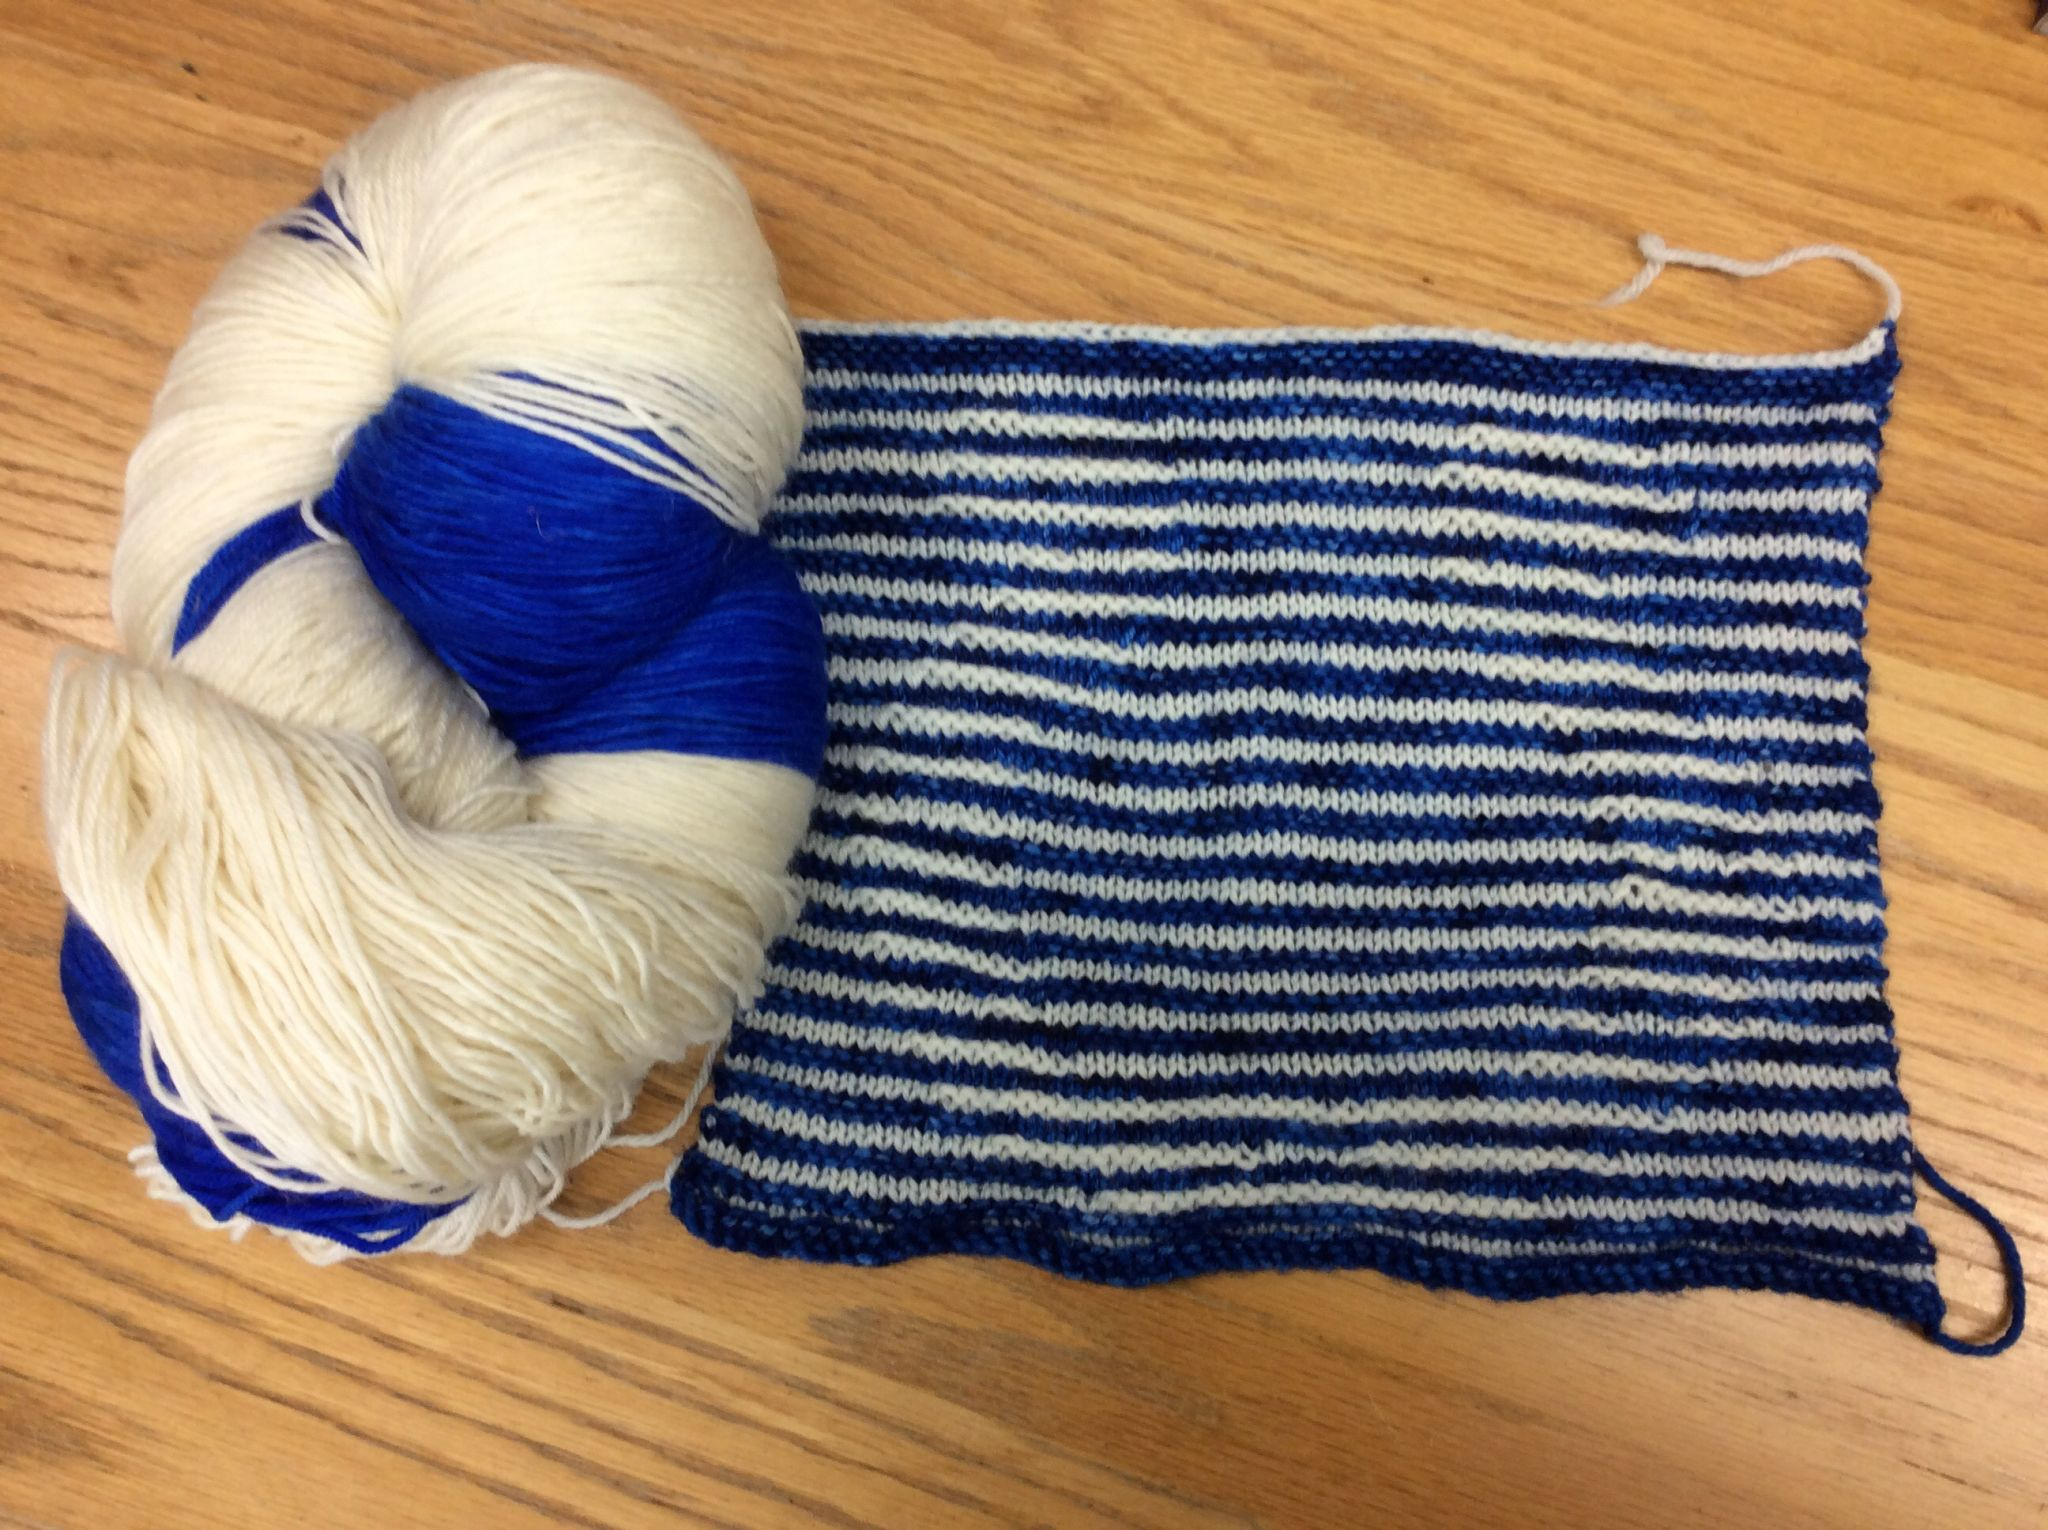 Mittens knitting pattern braid with shadow